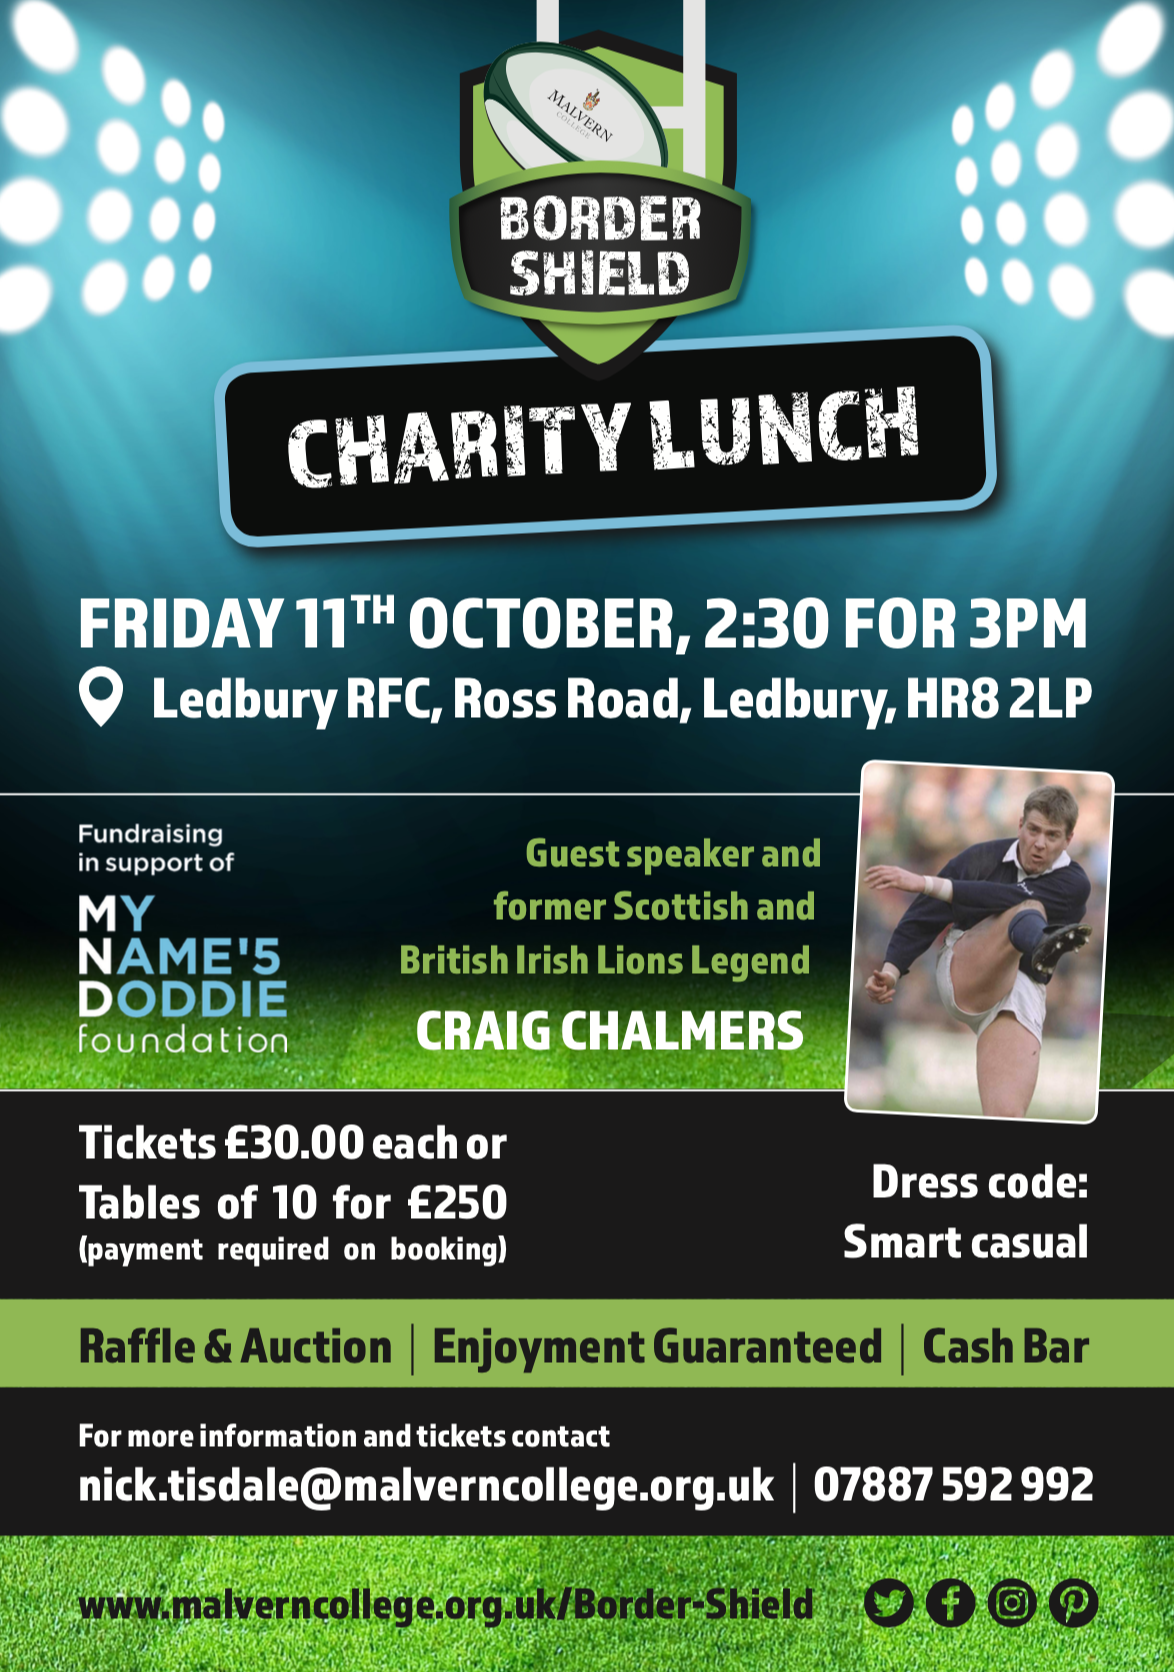 British and Irish Lion Craig Chalmers at fundraising event for My Name'5 Doddie Wier Foundation